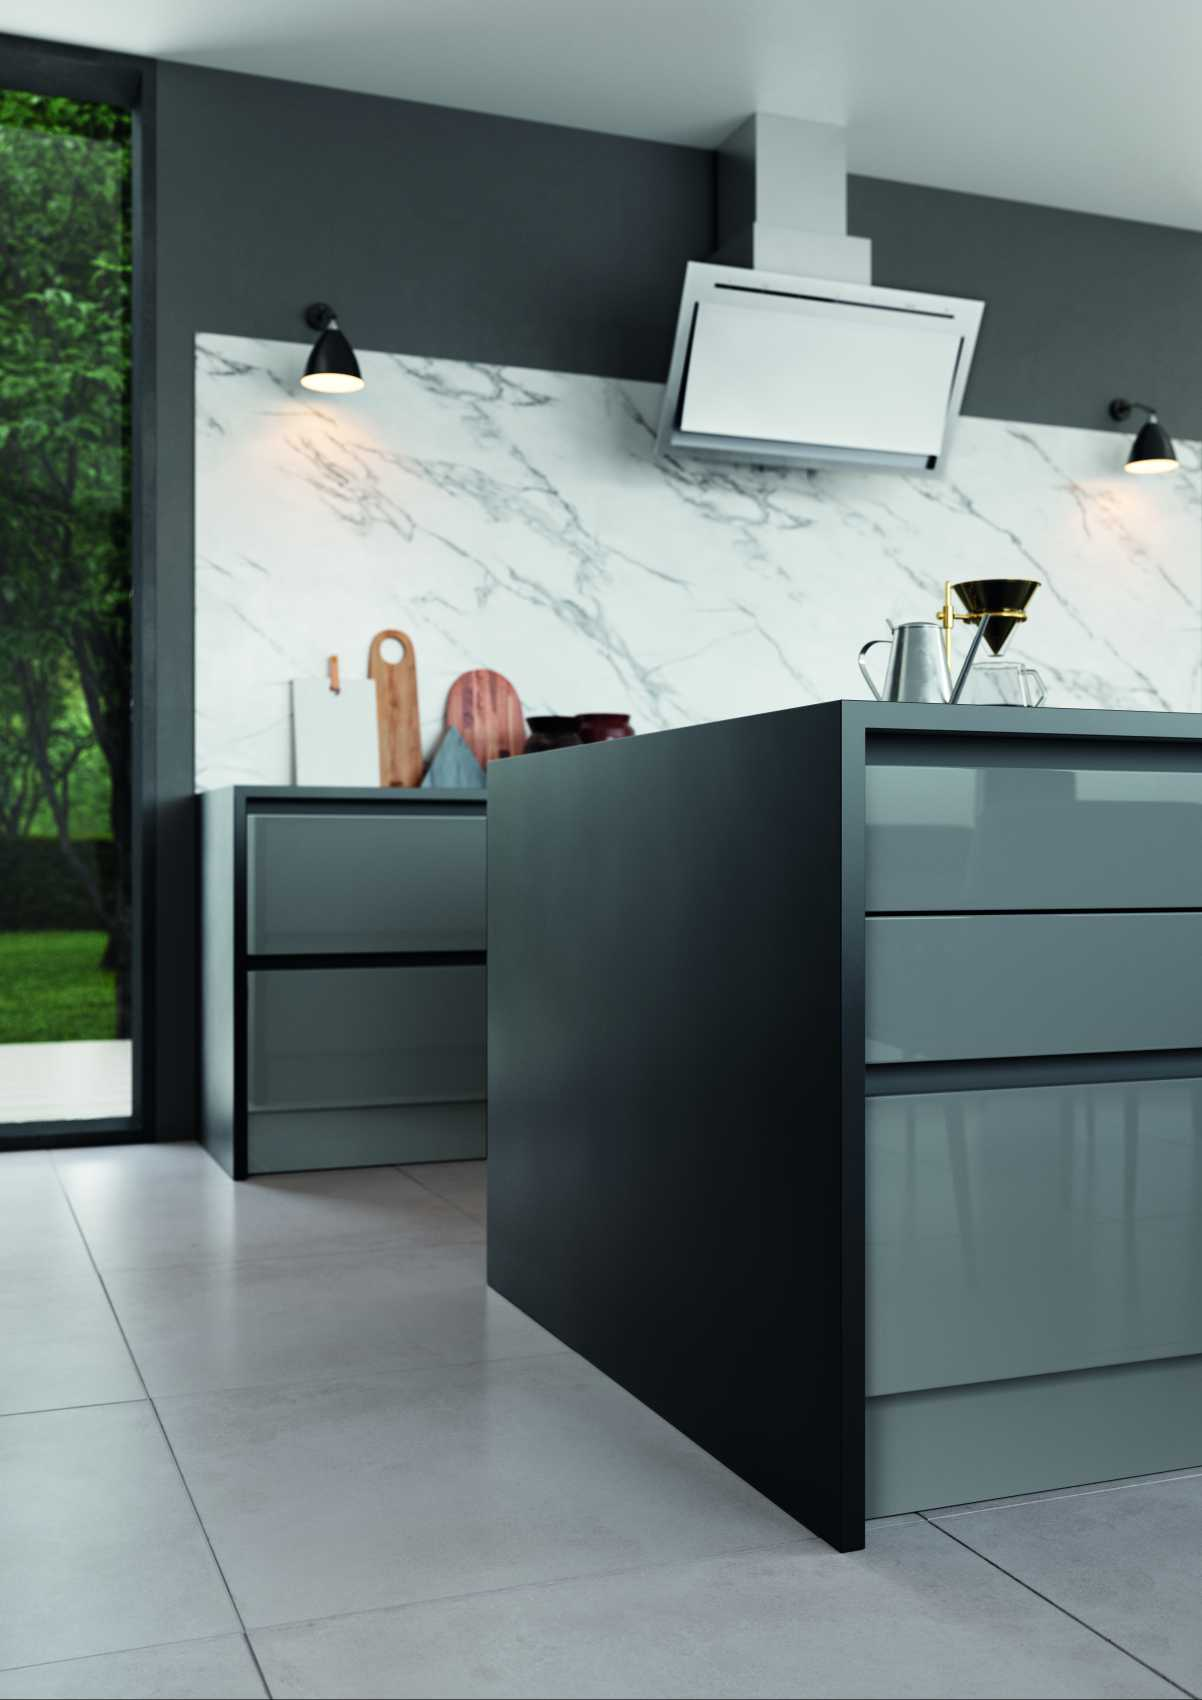 gloss dust grey and cashmere handleless modern kitchen corner detail and marble back splash